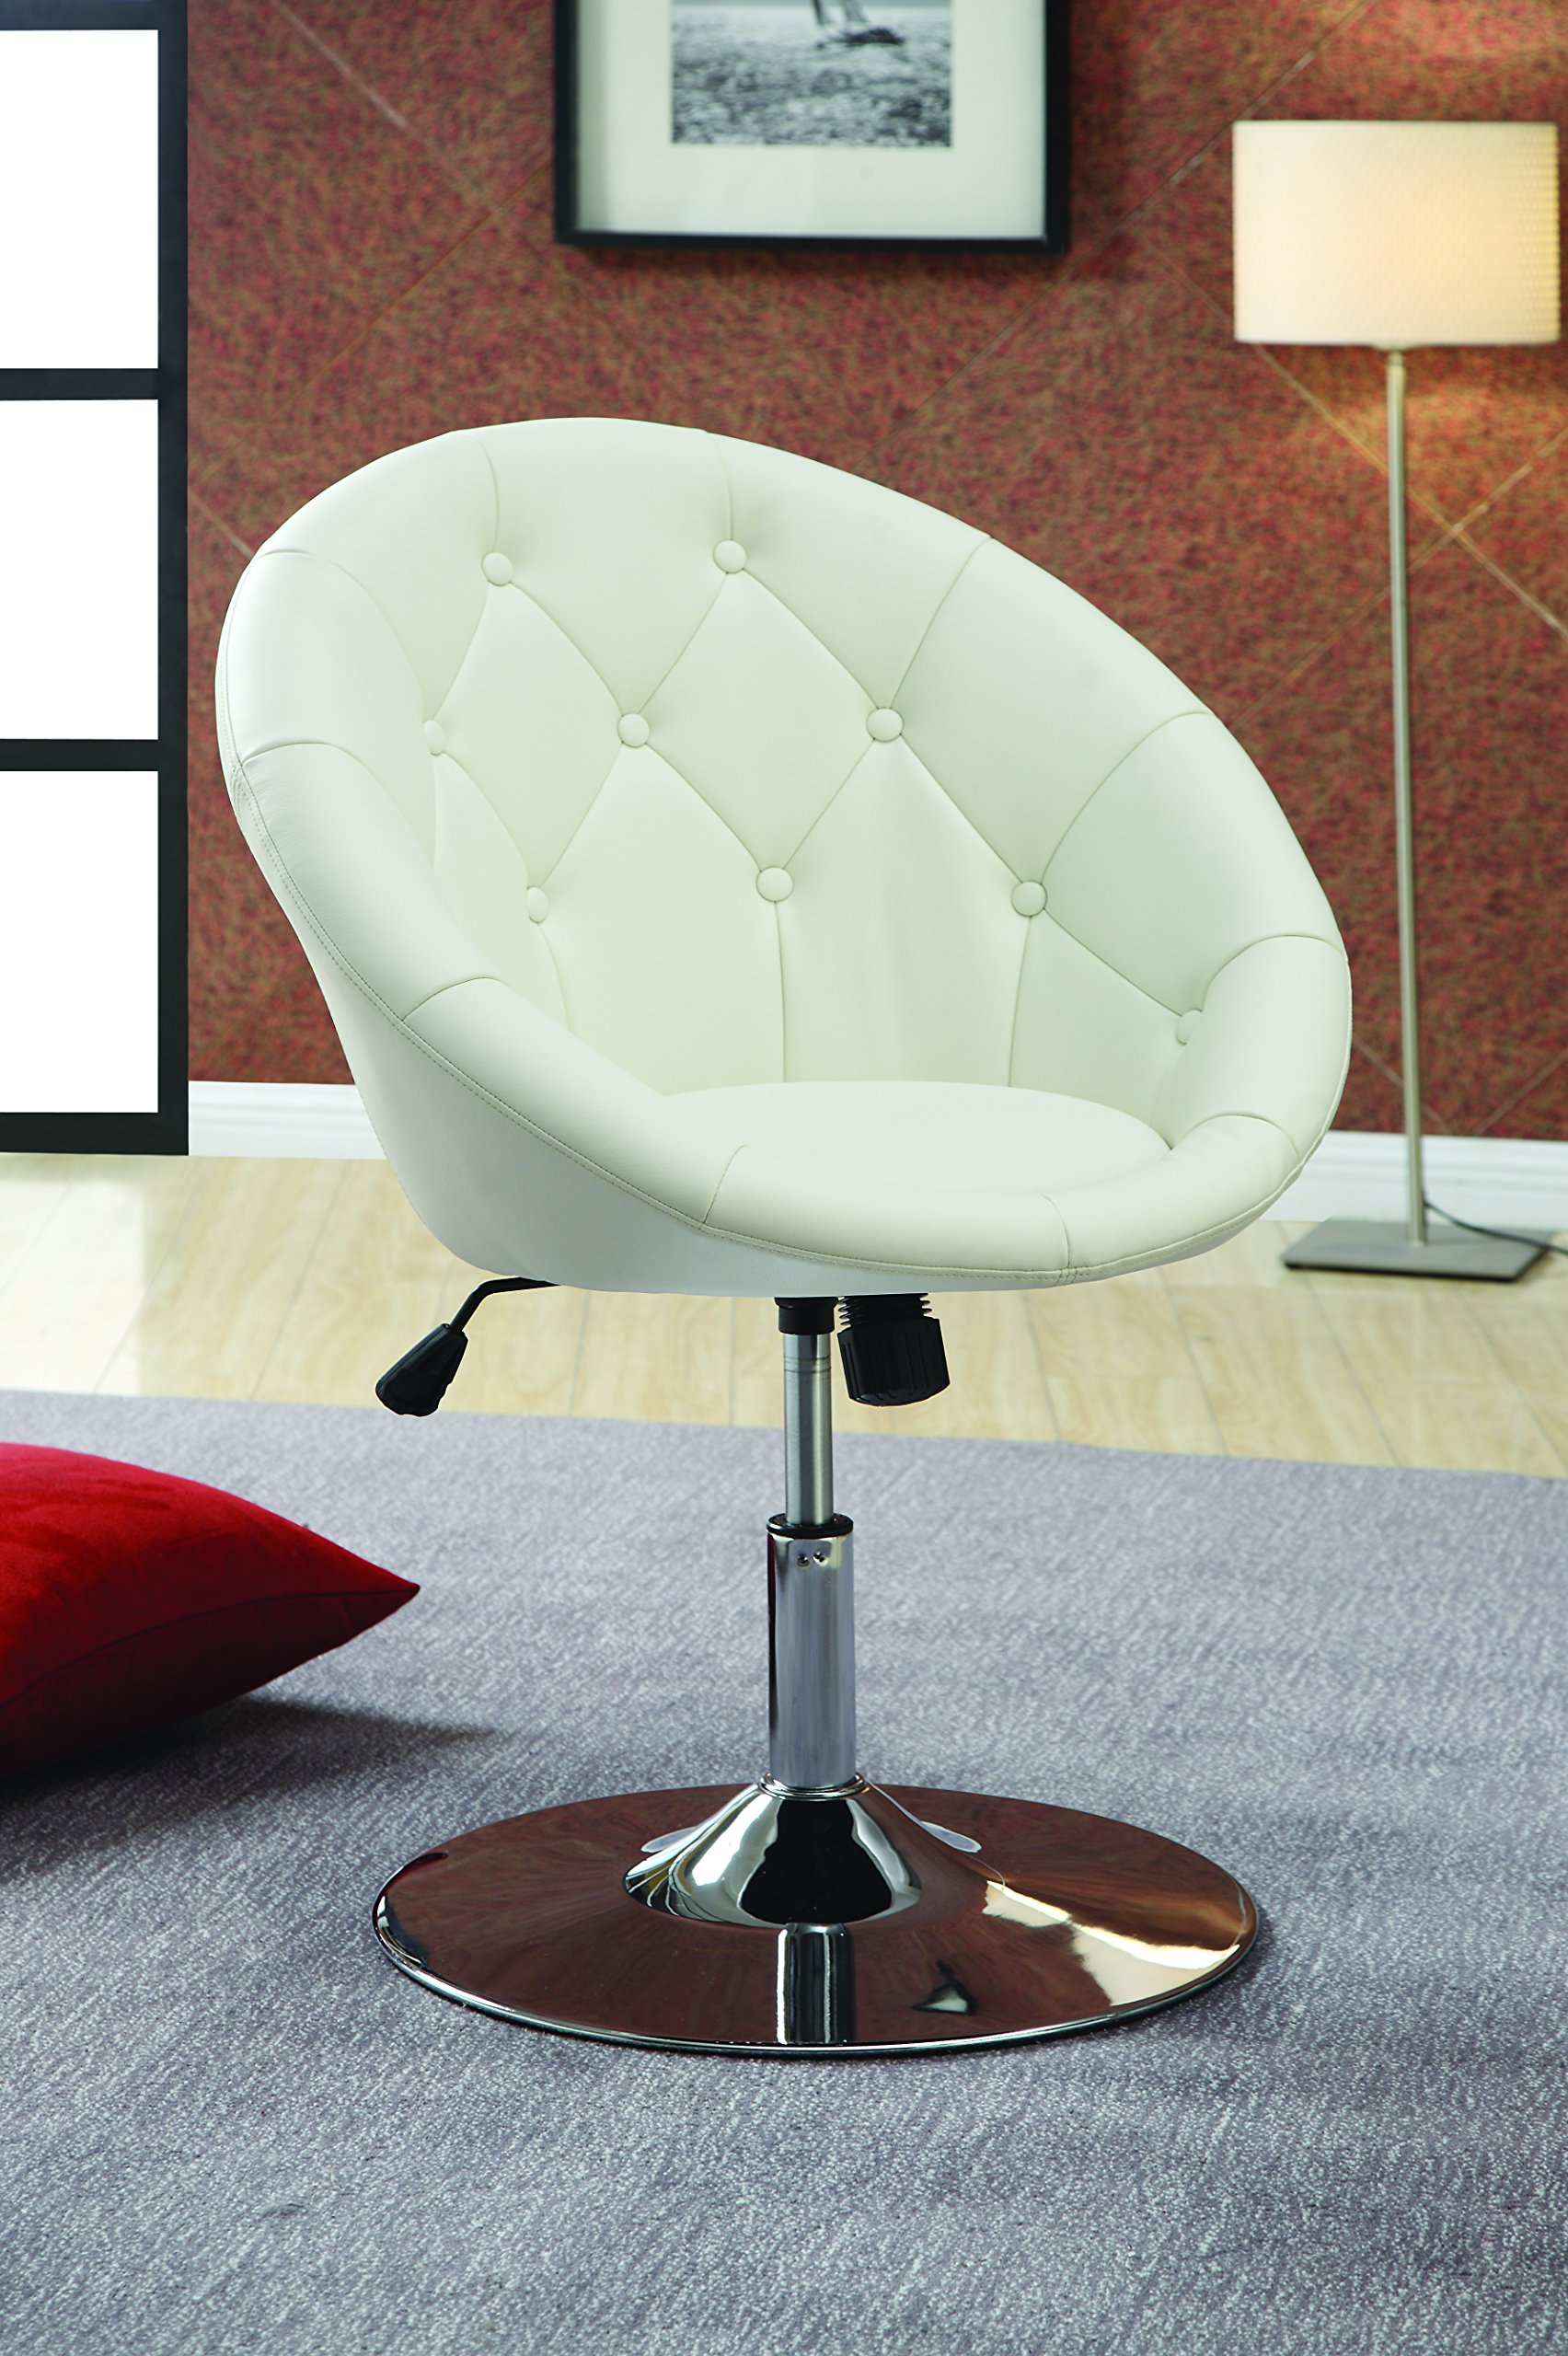 Details about White Vanity Stool Swivel Chair Bedroom Makeup Furniture  Tufted Stool Seat new